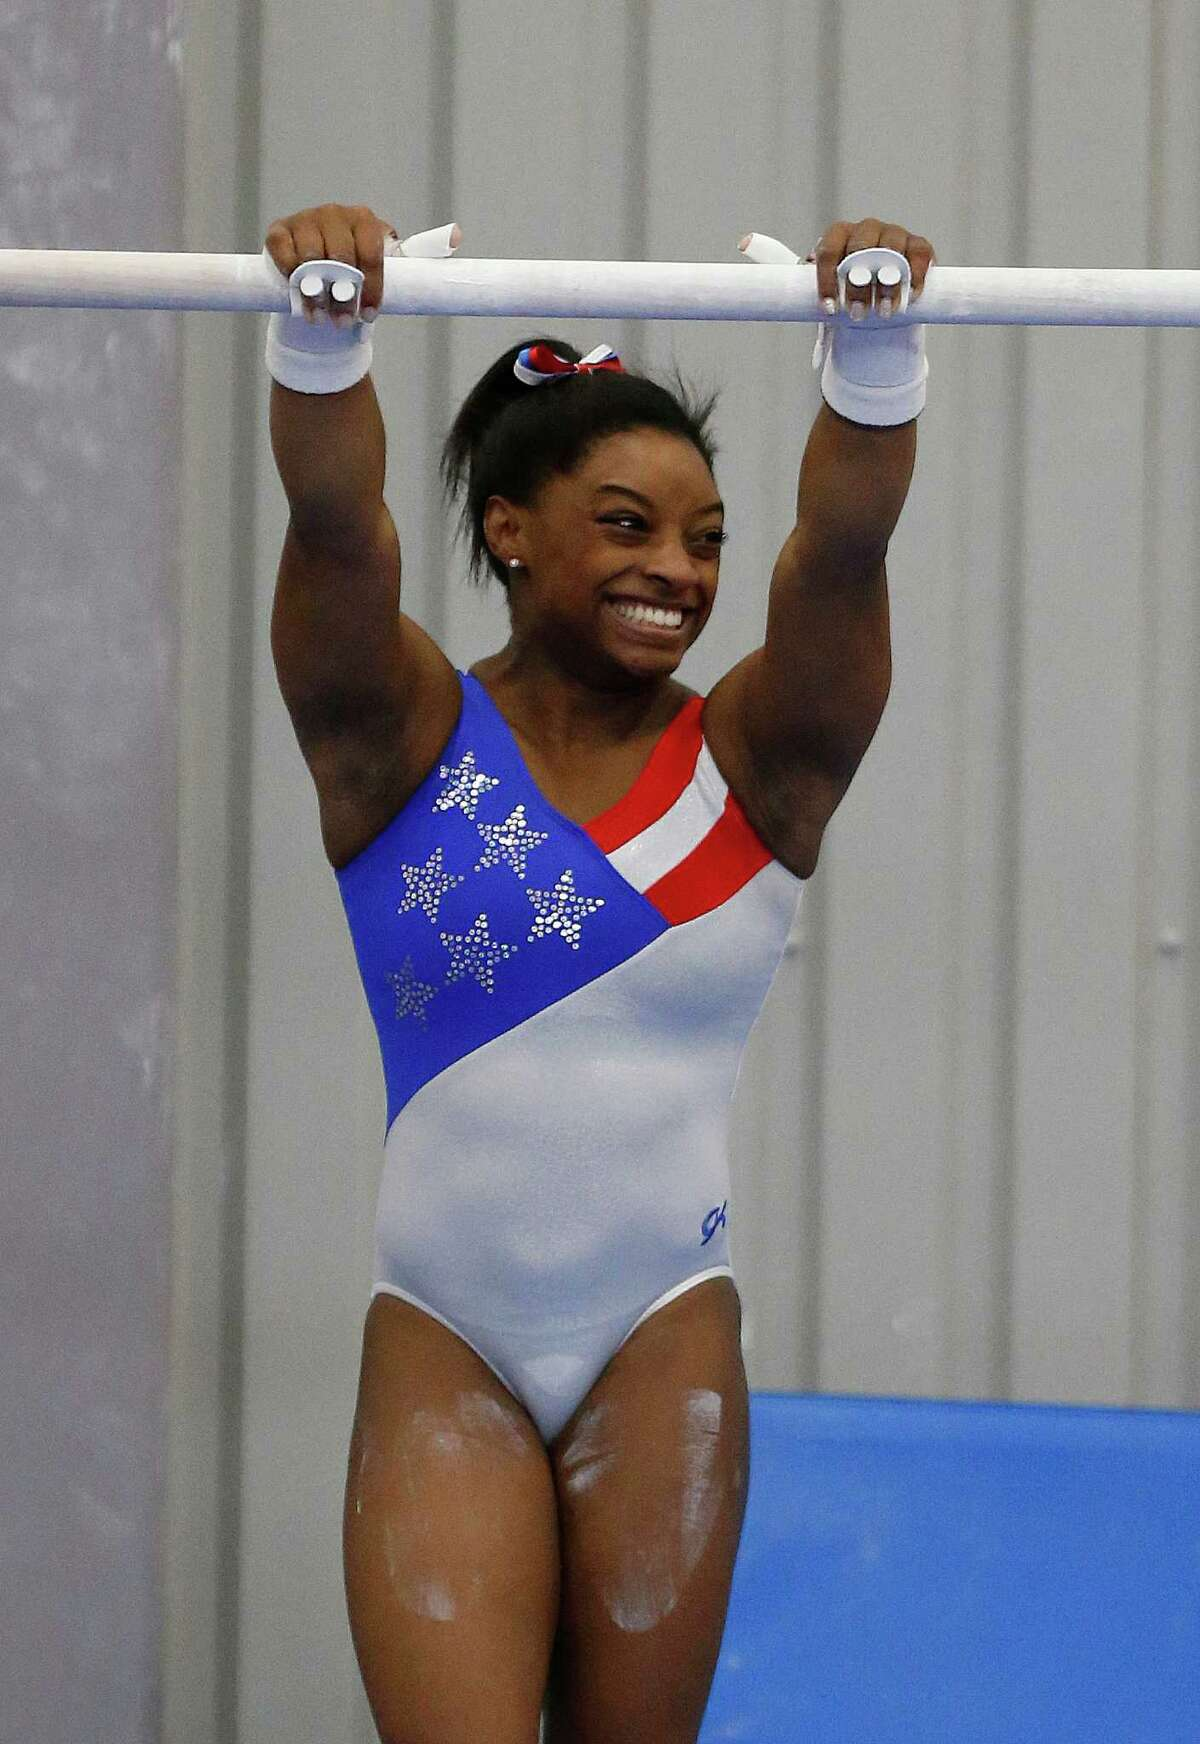 Gymnast Simone Biles has won gold at every event in which she has competed since 2013, including three consecutive all-around world titles.